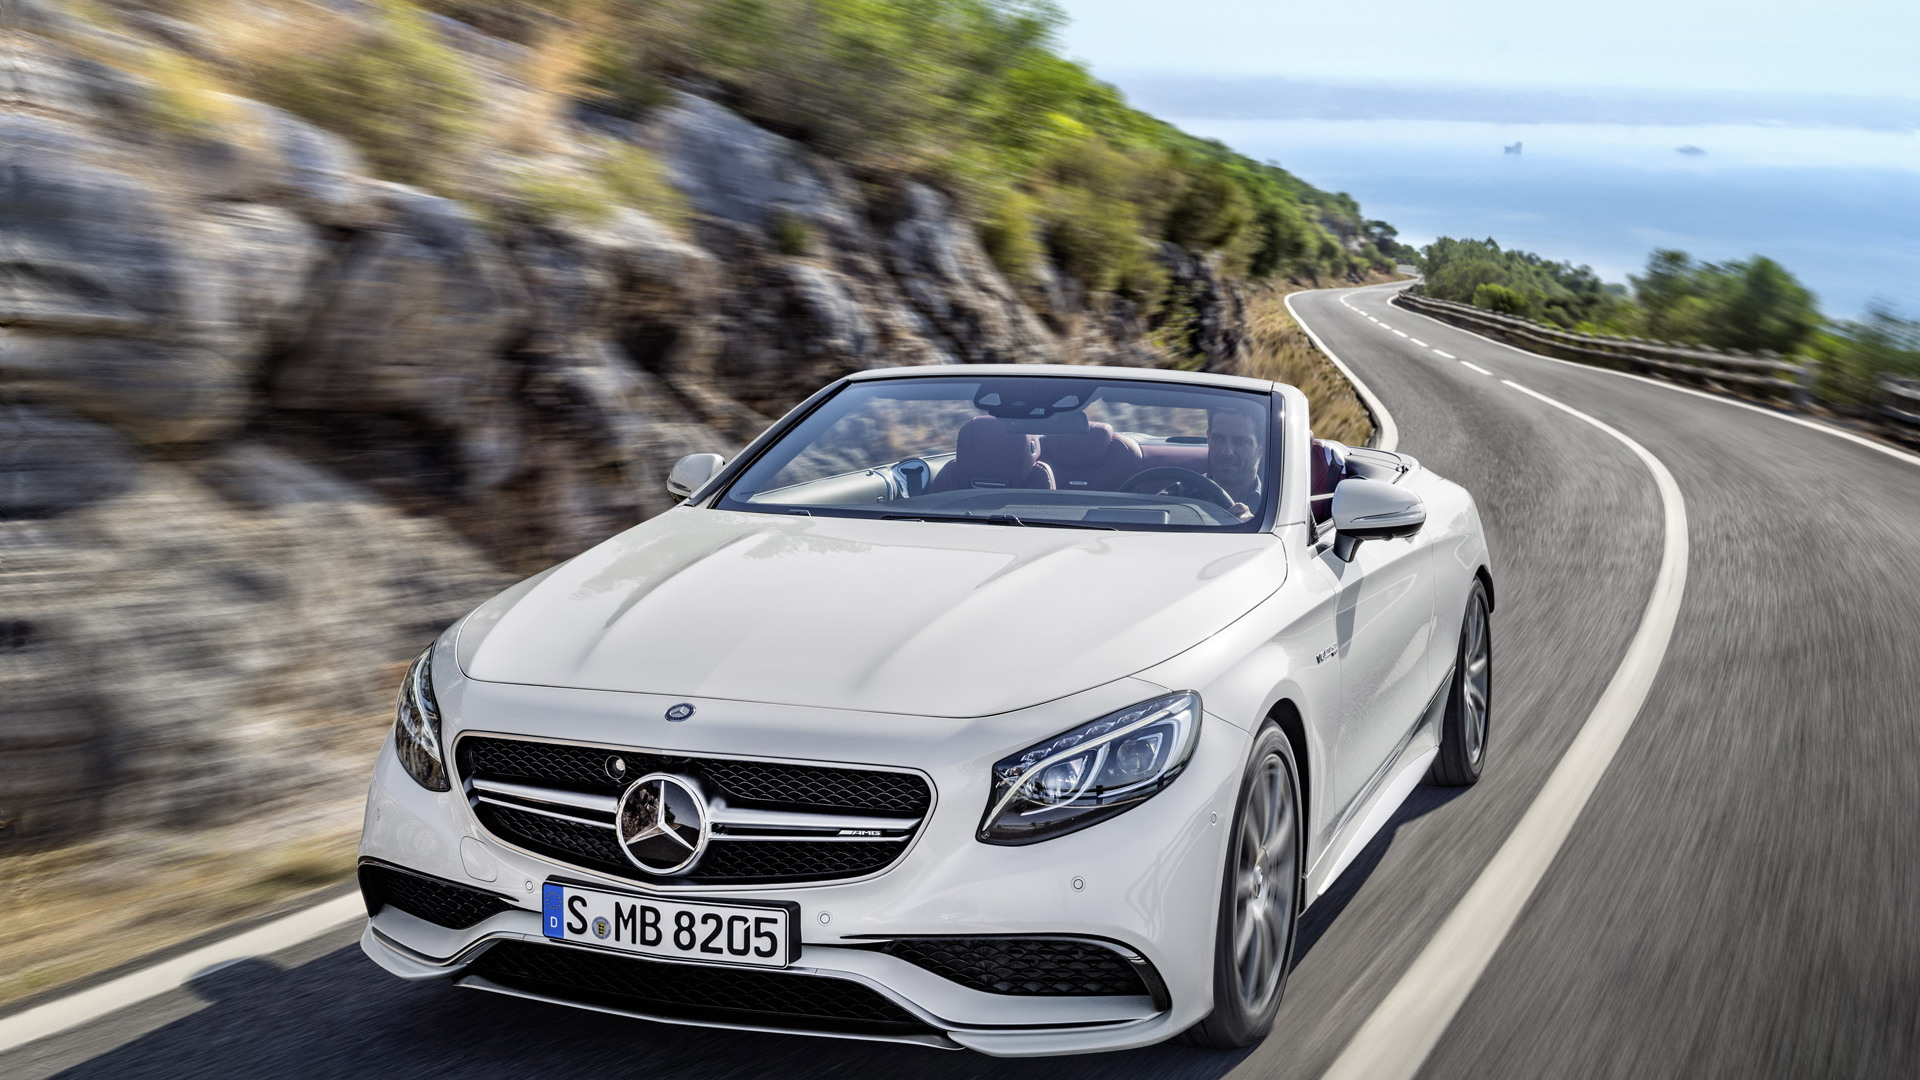 2017 Mercedes-AMG S63 Cabriolet